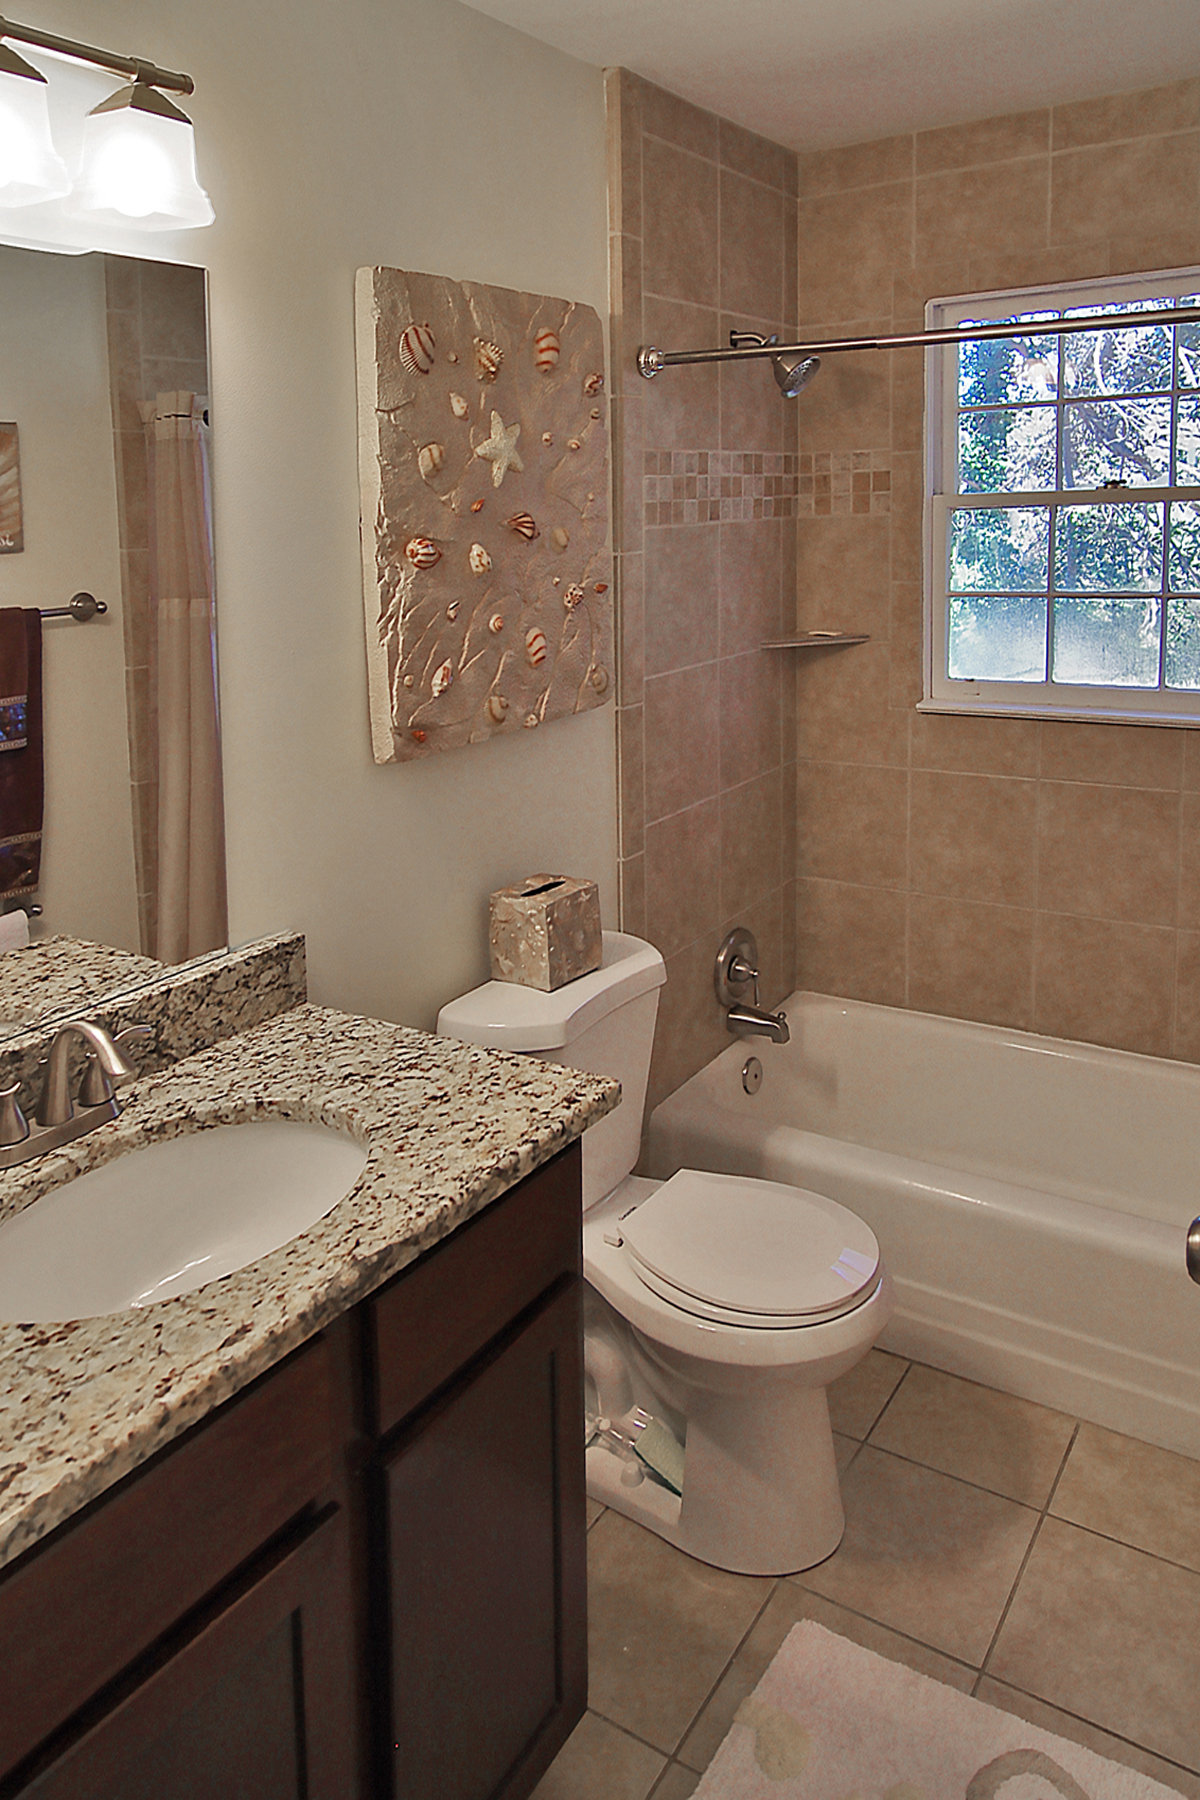 Additional photo for property listing at Great Location And Neighborhood 705 Pinehill Drive SE Smyrna, Georgia 30080 United States